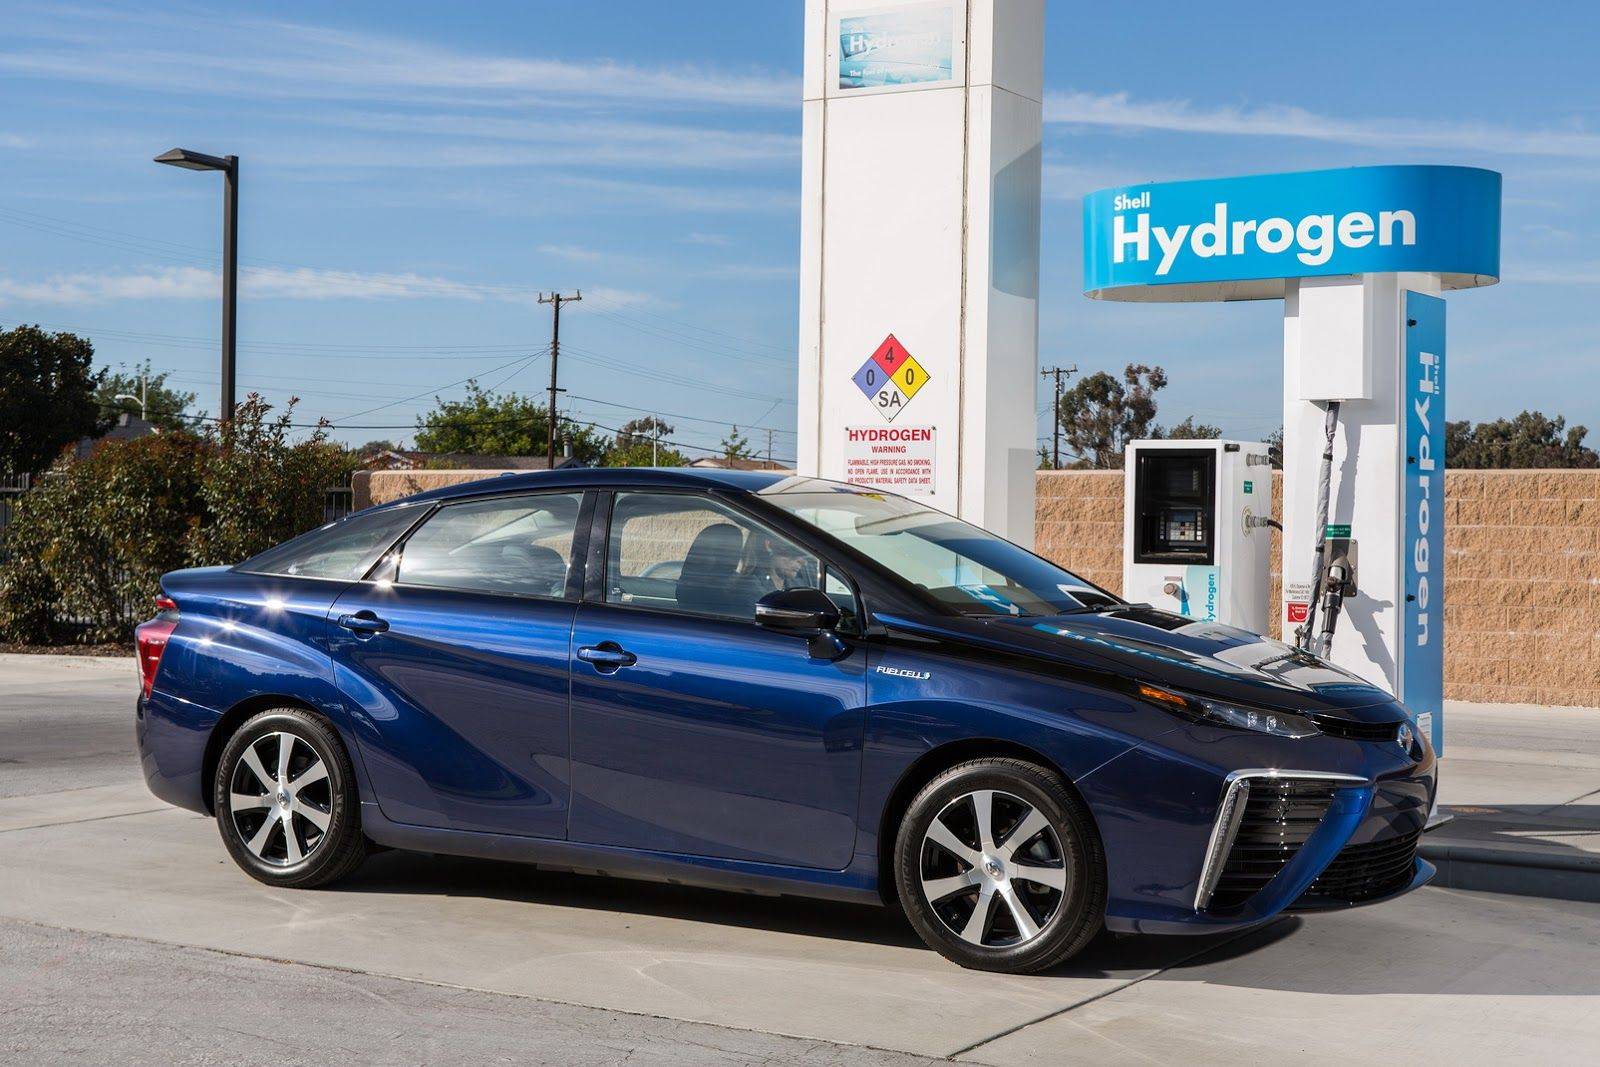 Toyota Partners With....Shell For Hydrogen Fuel Stations